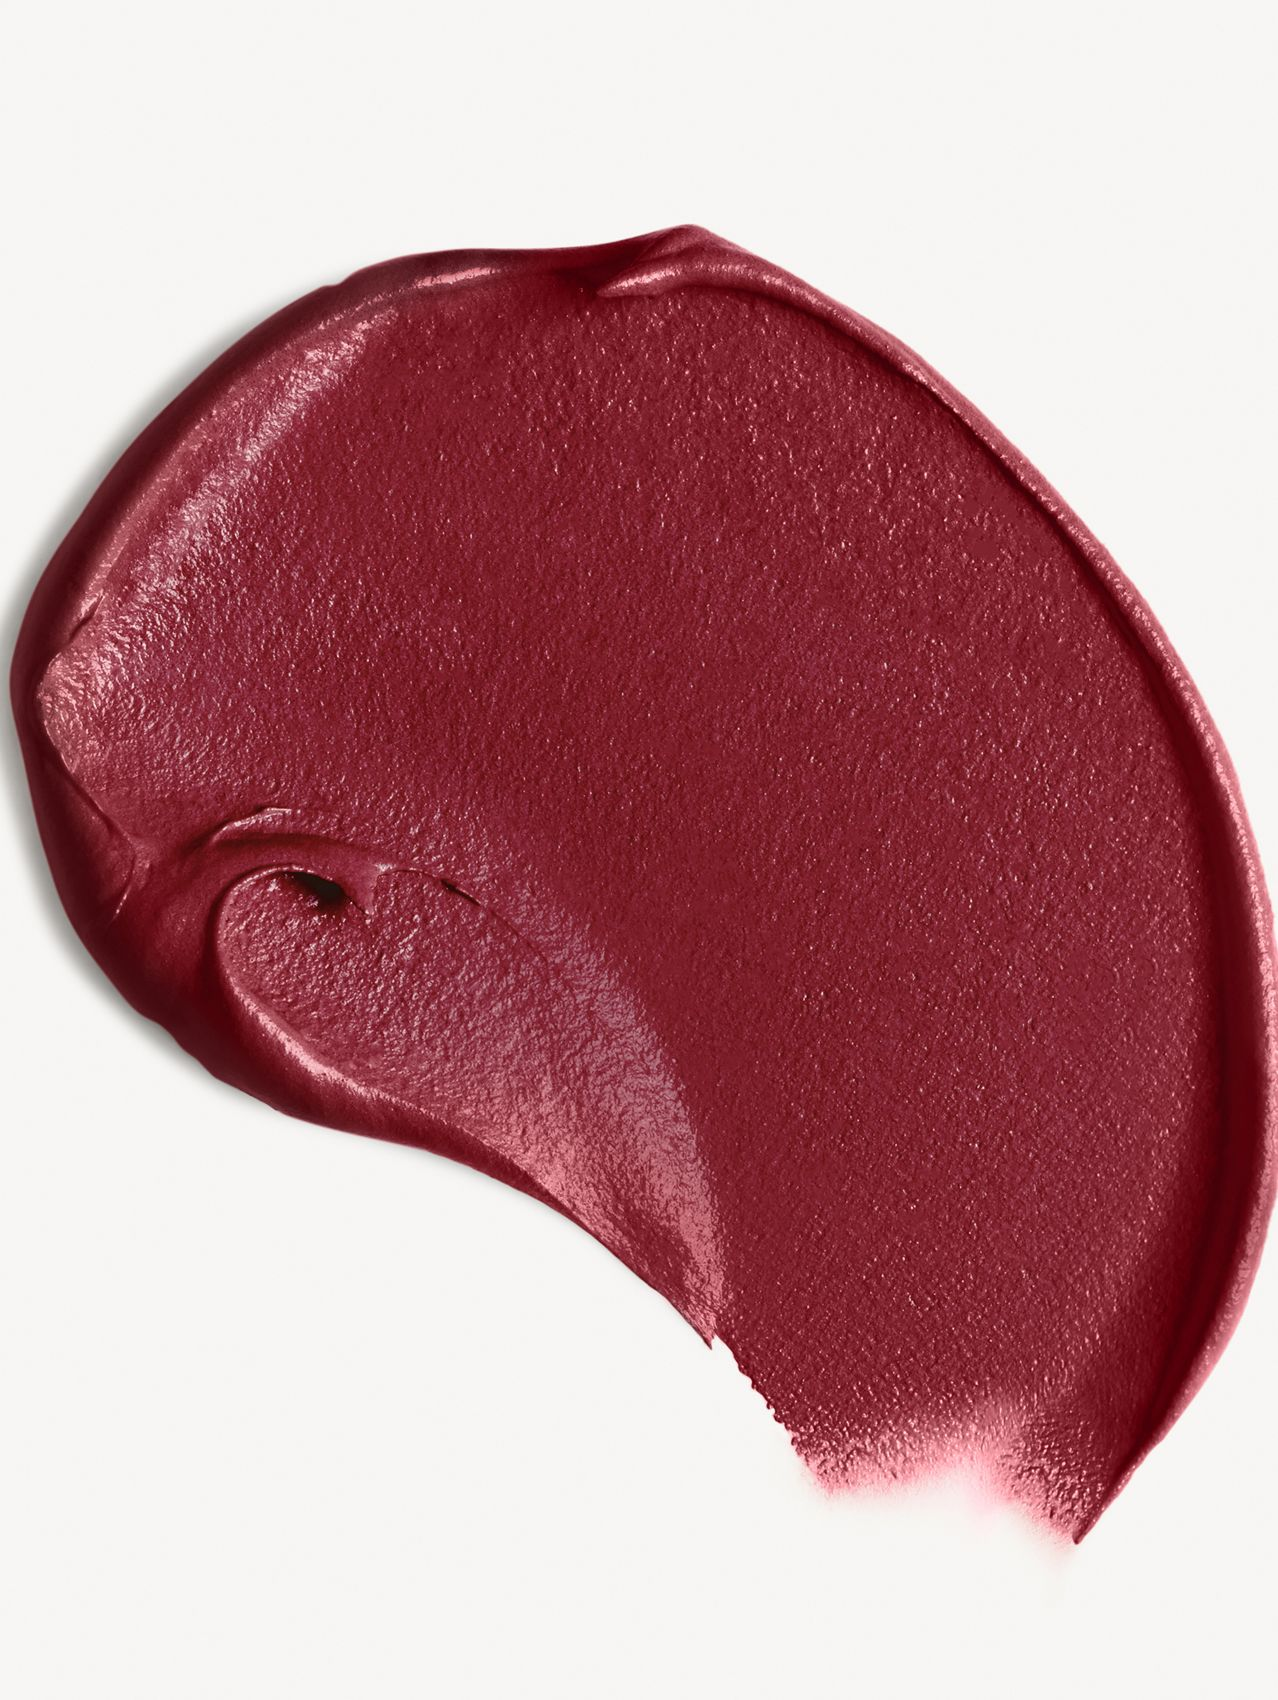 Liquid Lip Velvet – Oxblood No.53